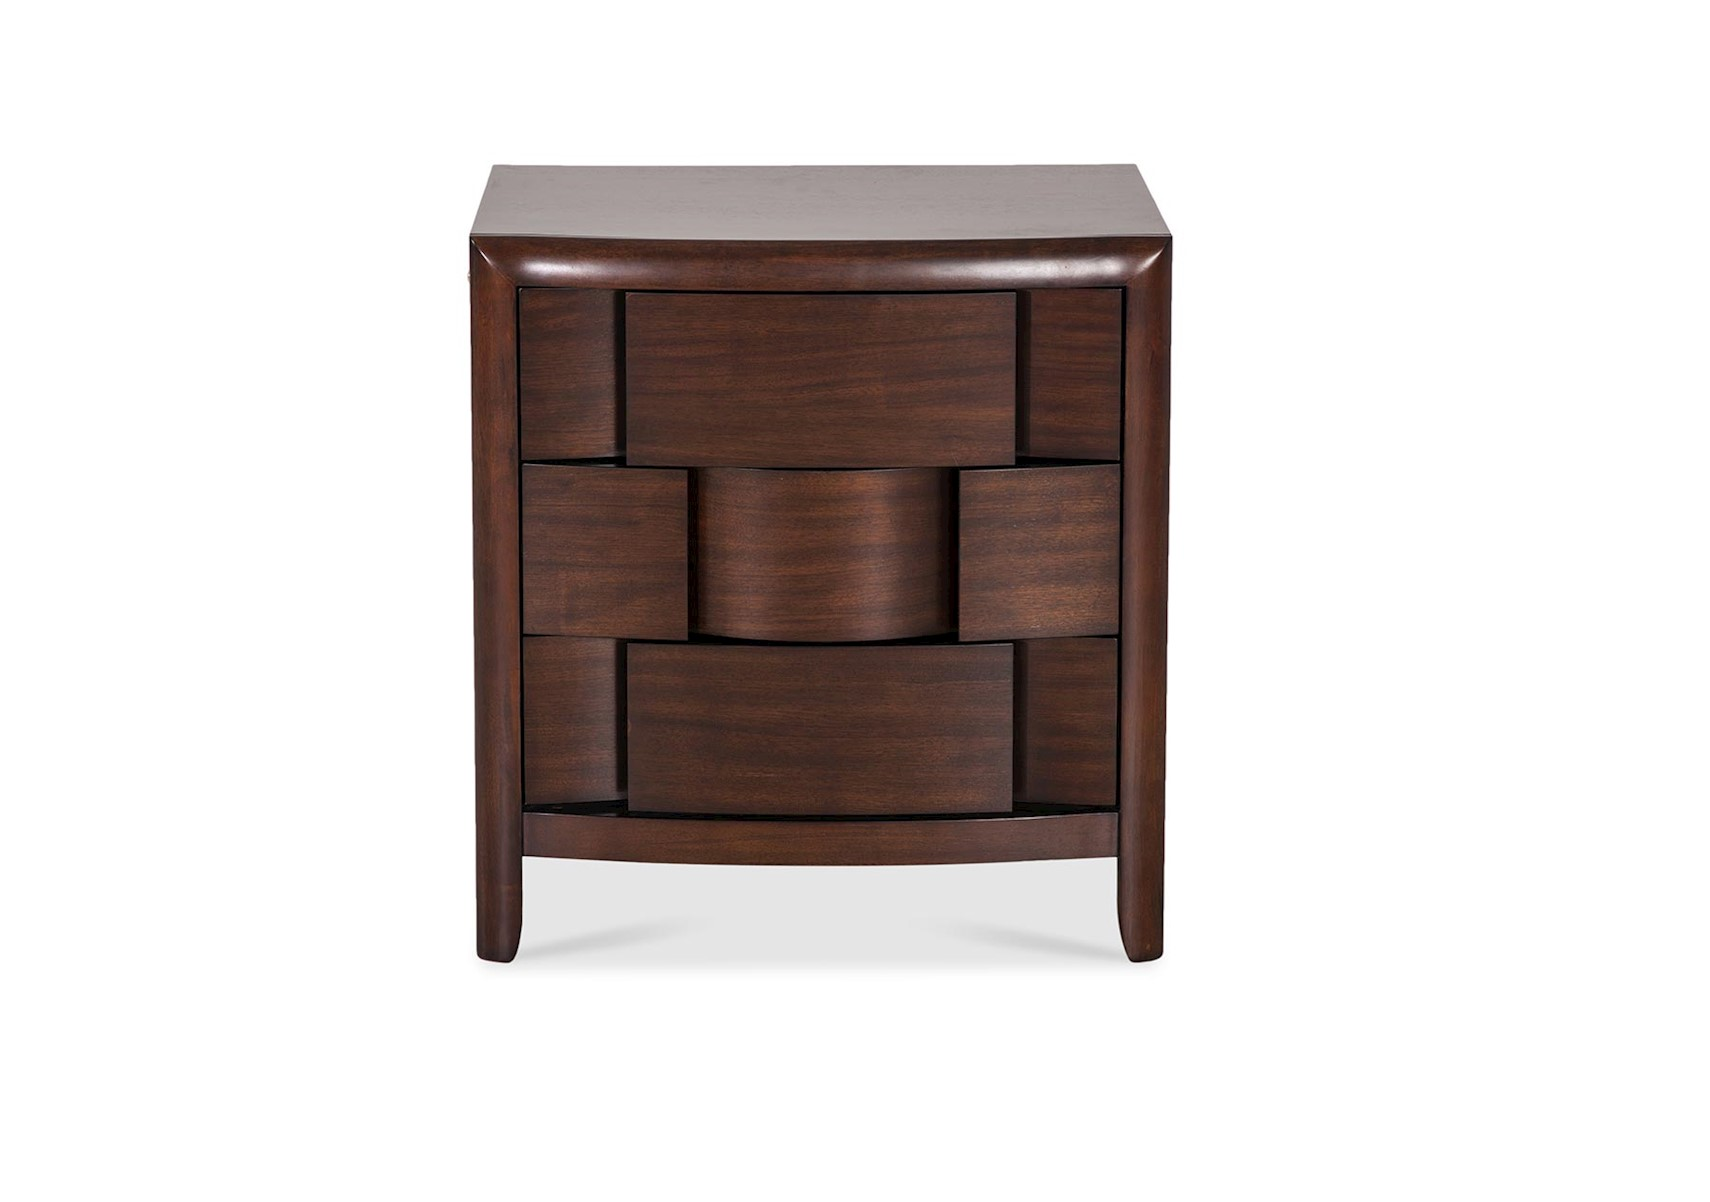 drwr wht products lacquer trpl table tbl homenature drawer end